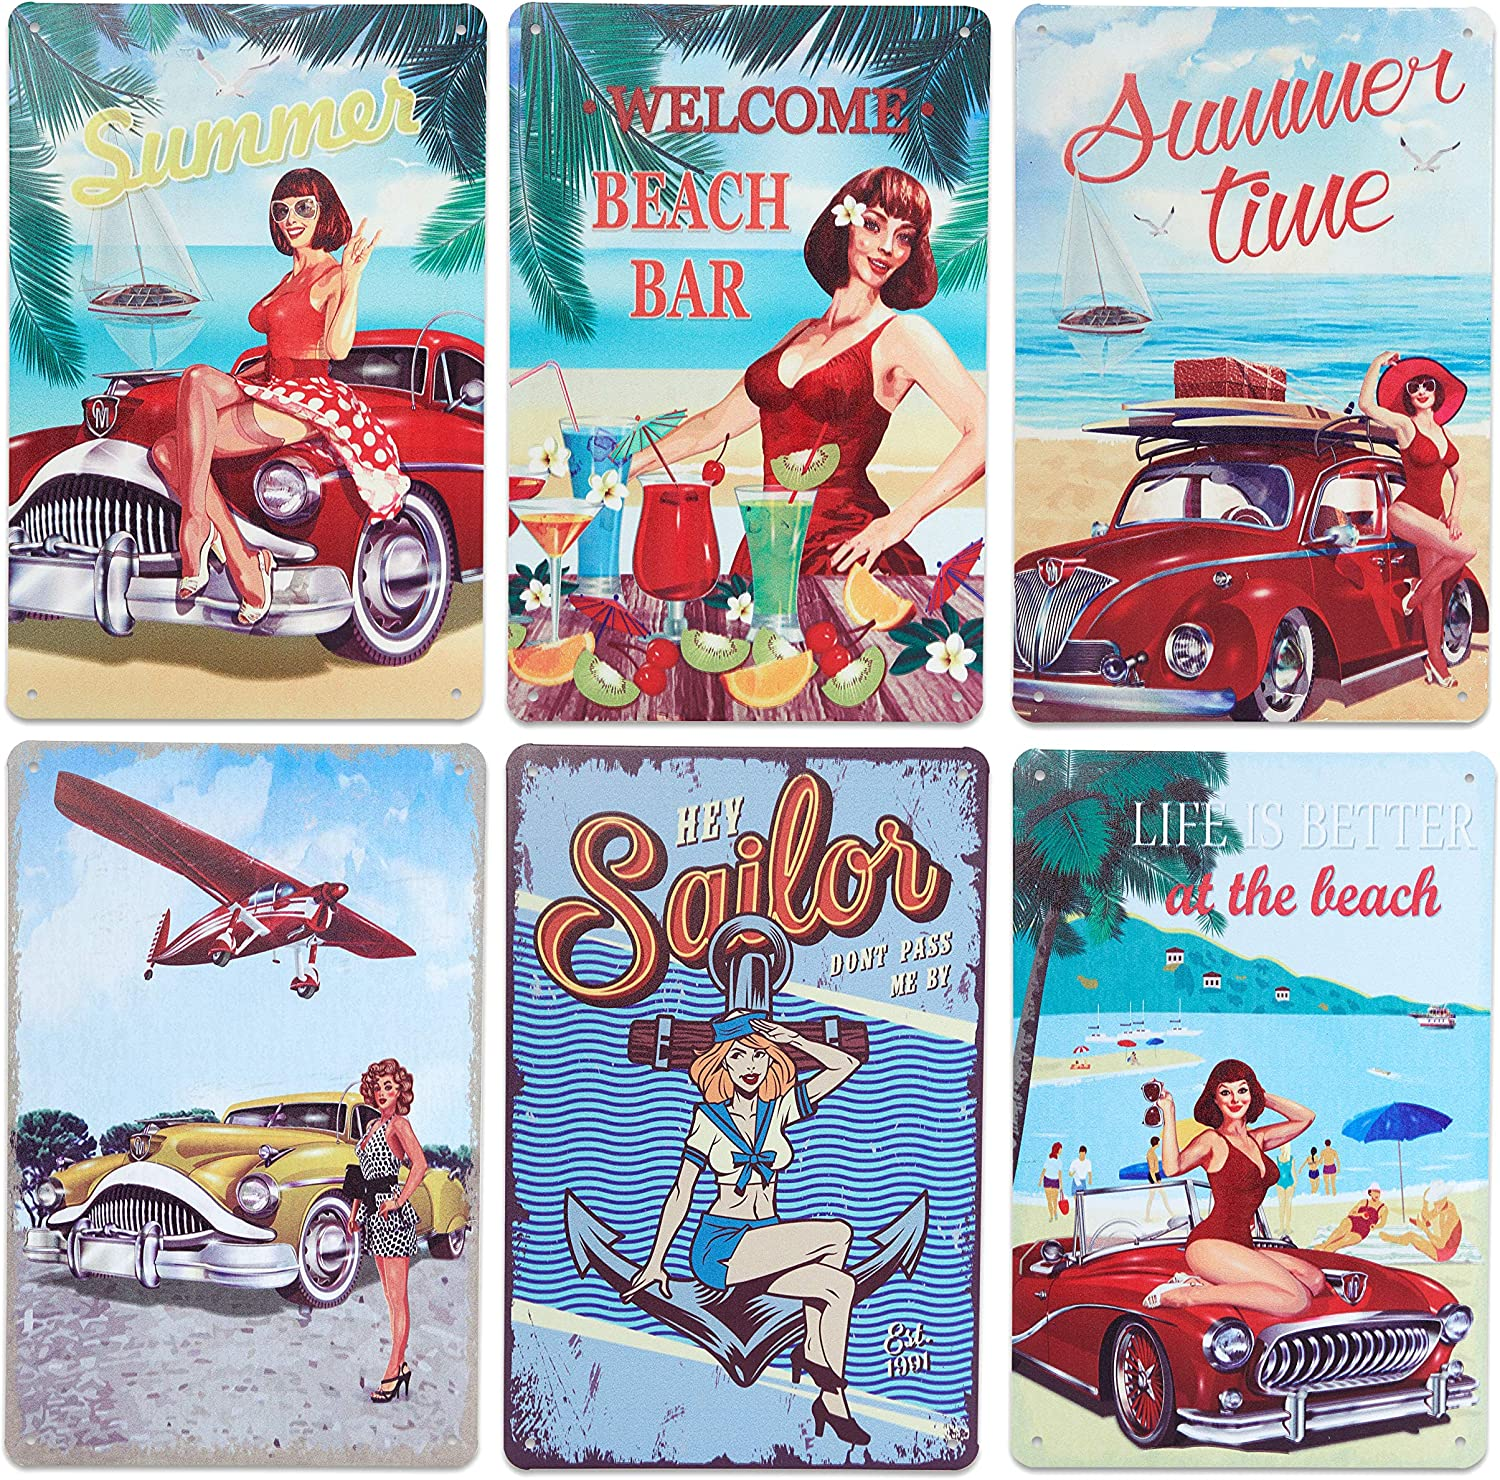 Okuna Outpost Vintage Metal Signs, Pinup Wall Decor (8 x 11.8 Inches, 6 Pack)